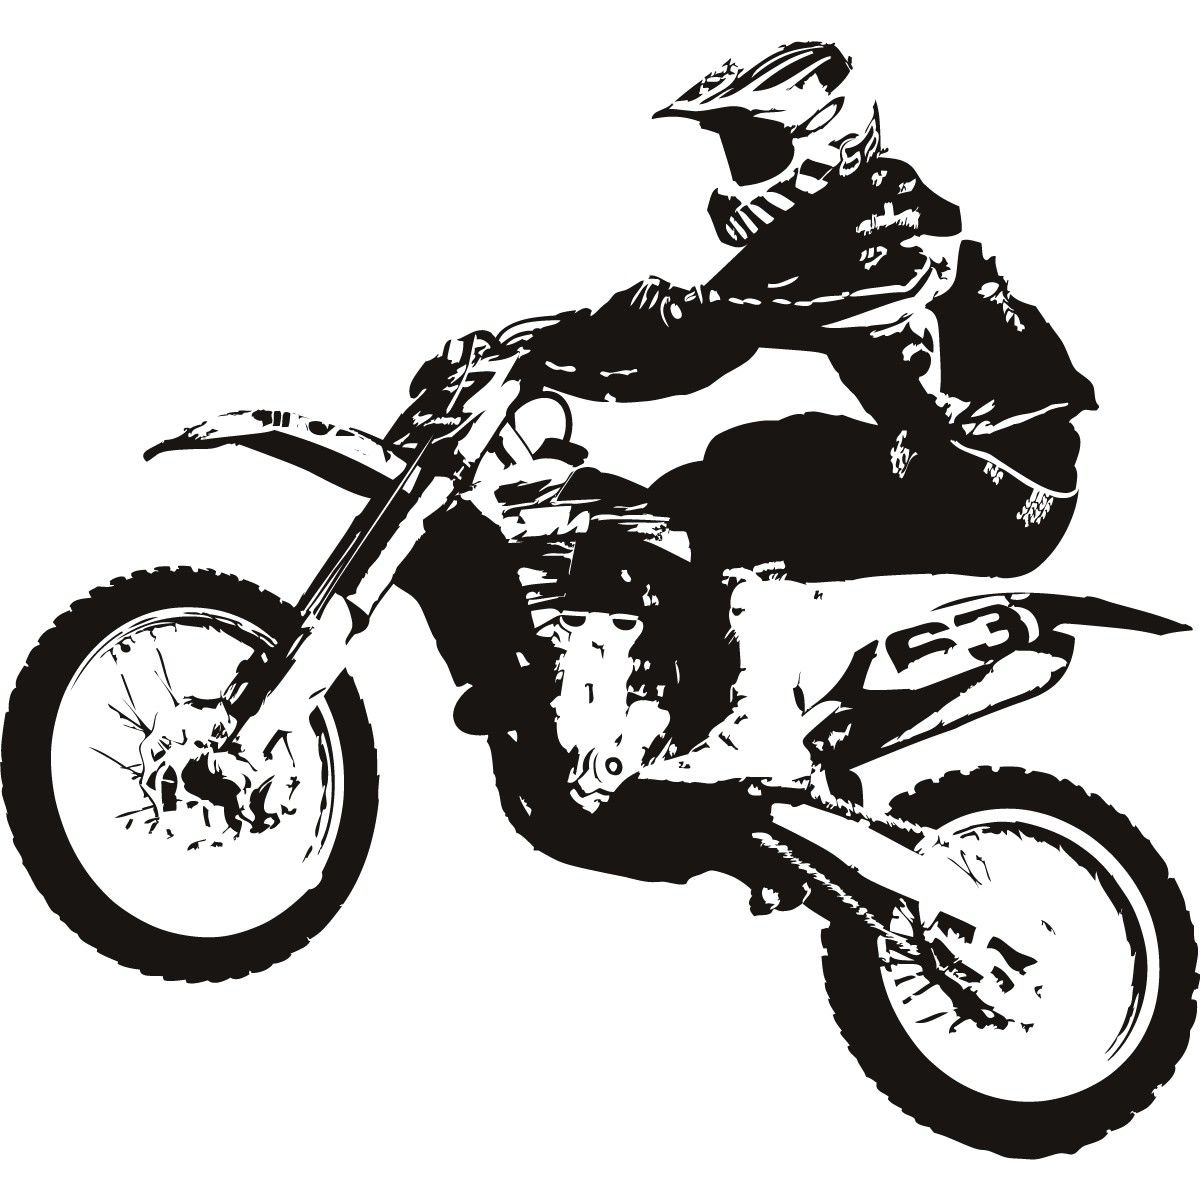 Free download Motocross Bike Clipart for your creation.